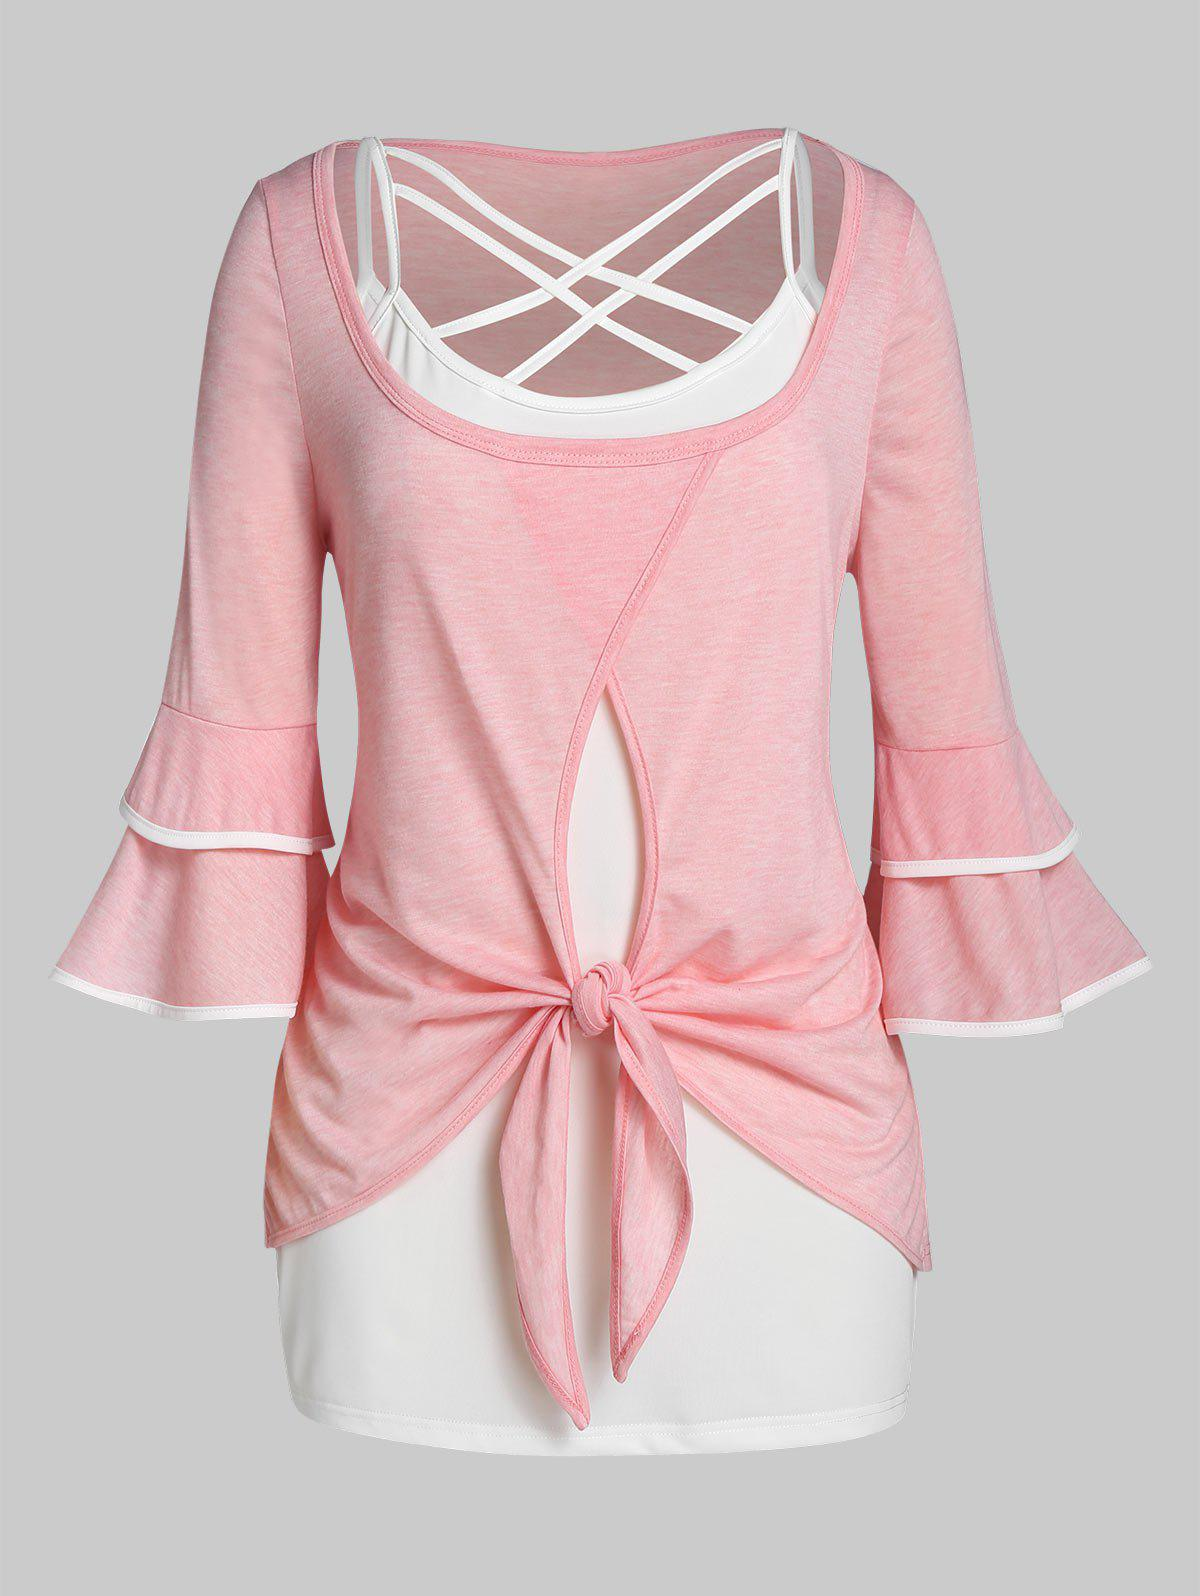 Plus Size Knotted Bell Sleeve T-shirt with Lattice Cami Top Set - PINK 5X